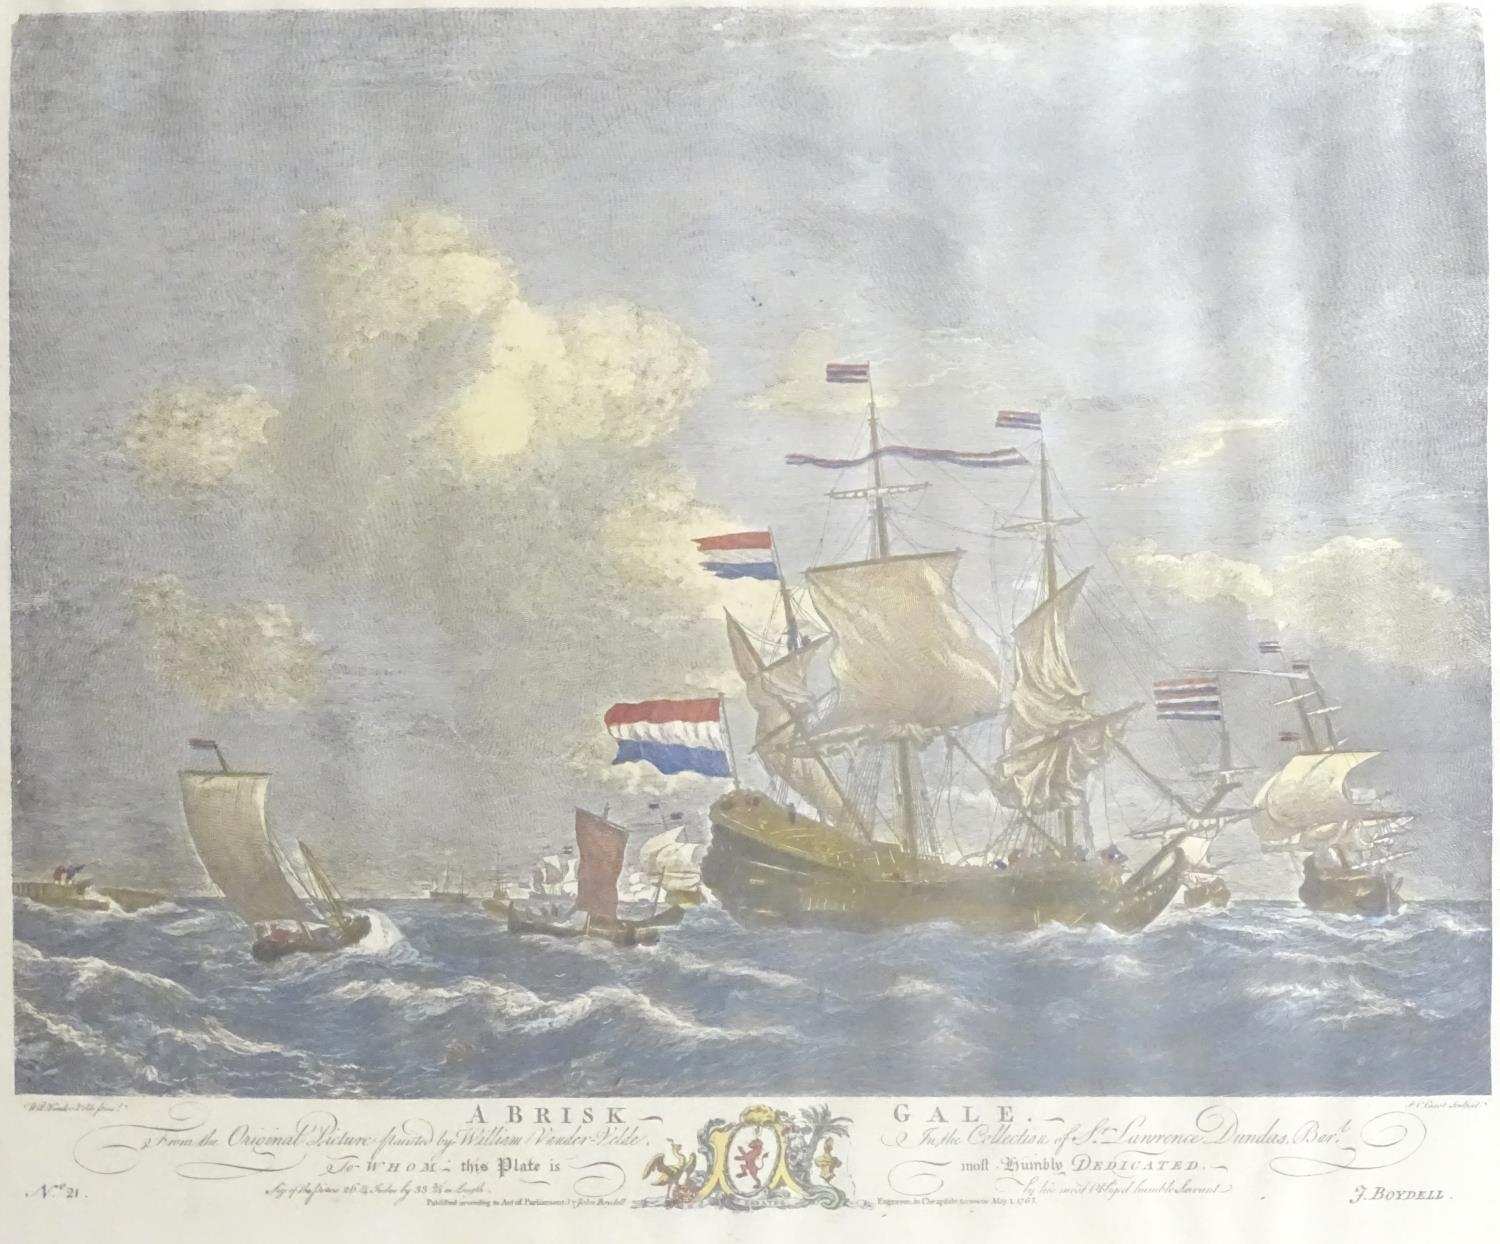 P. C. Canot, after Willem van de Velde, Two hand coloured engravings, A Brisk Gale, depicting a - Image 3 of 8